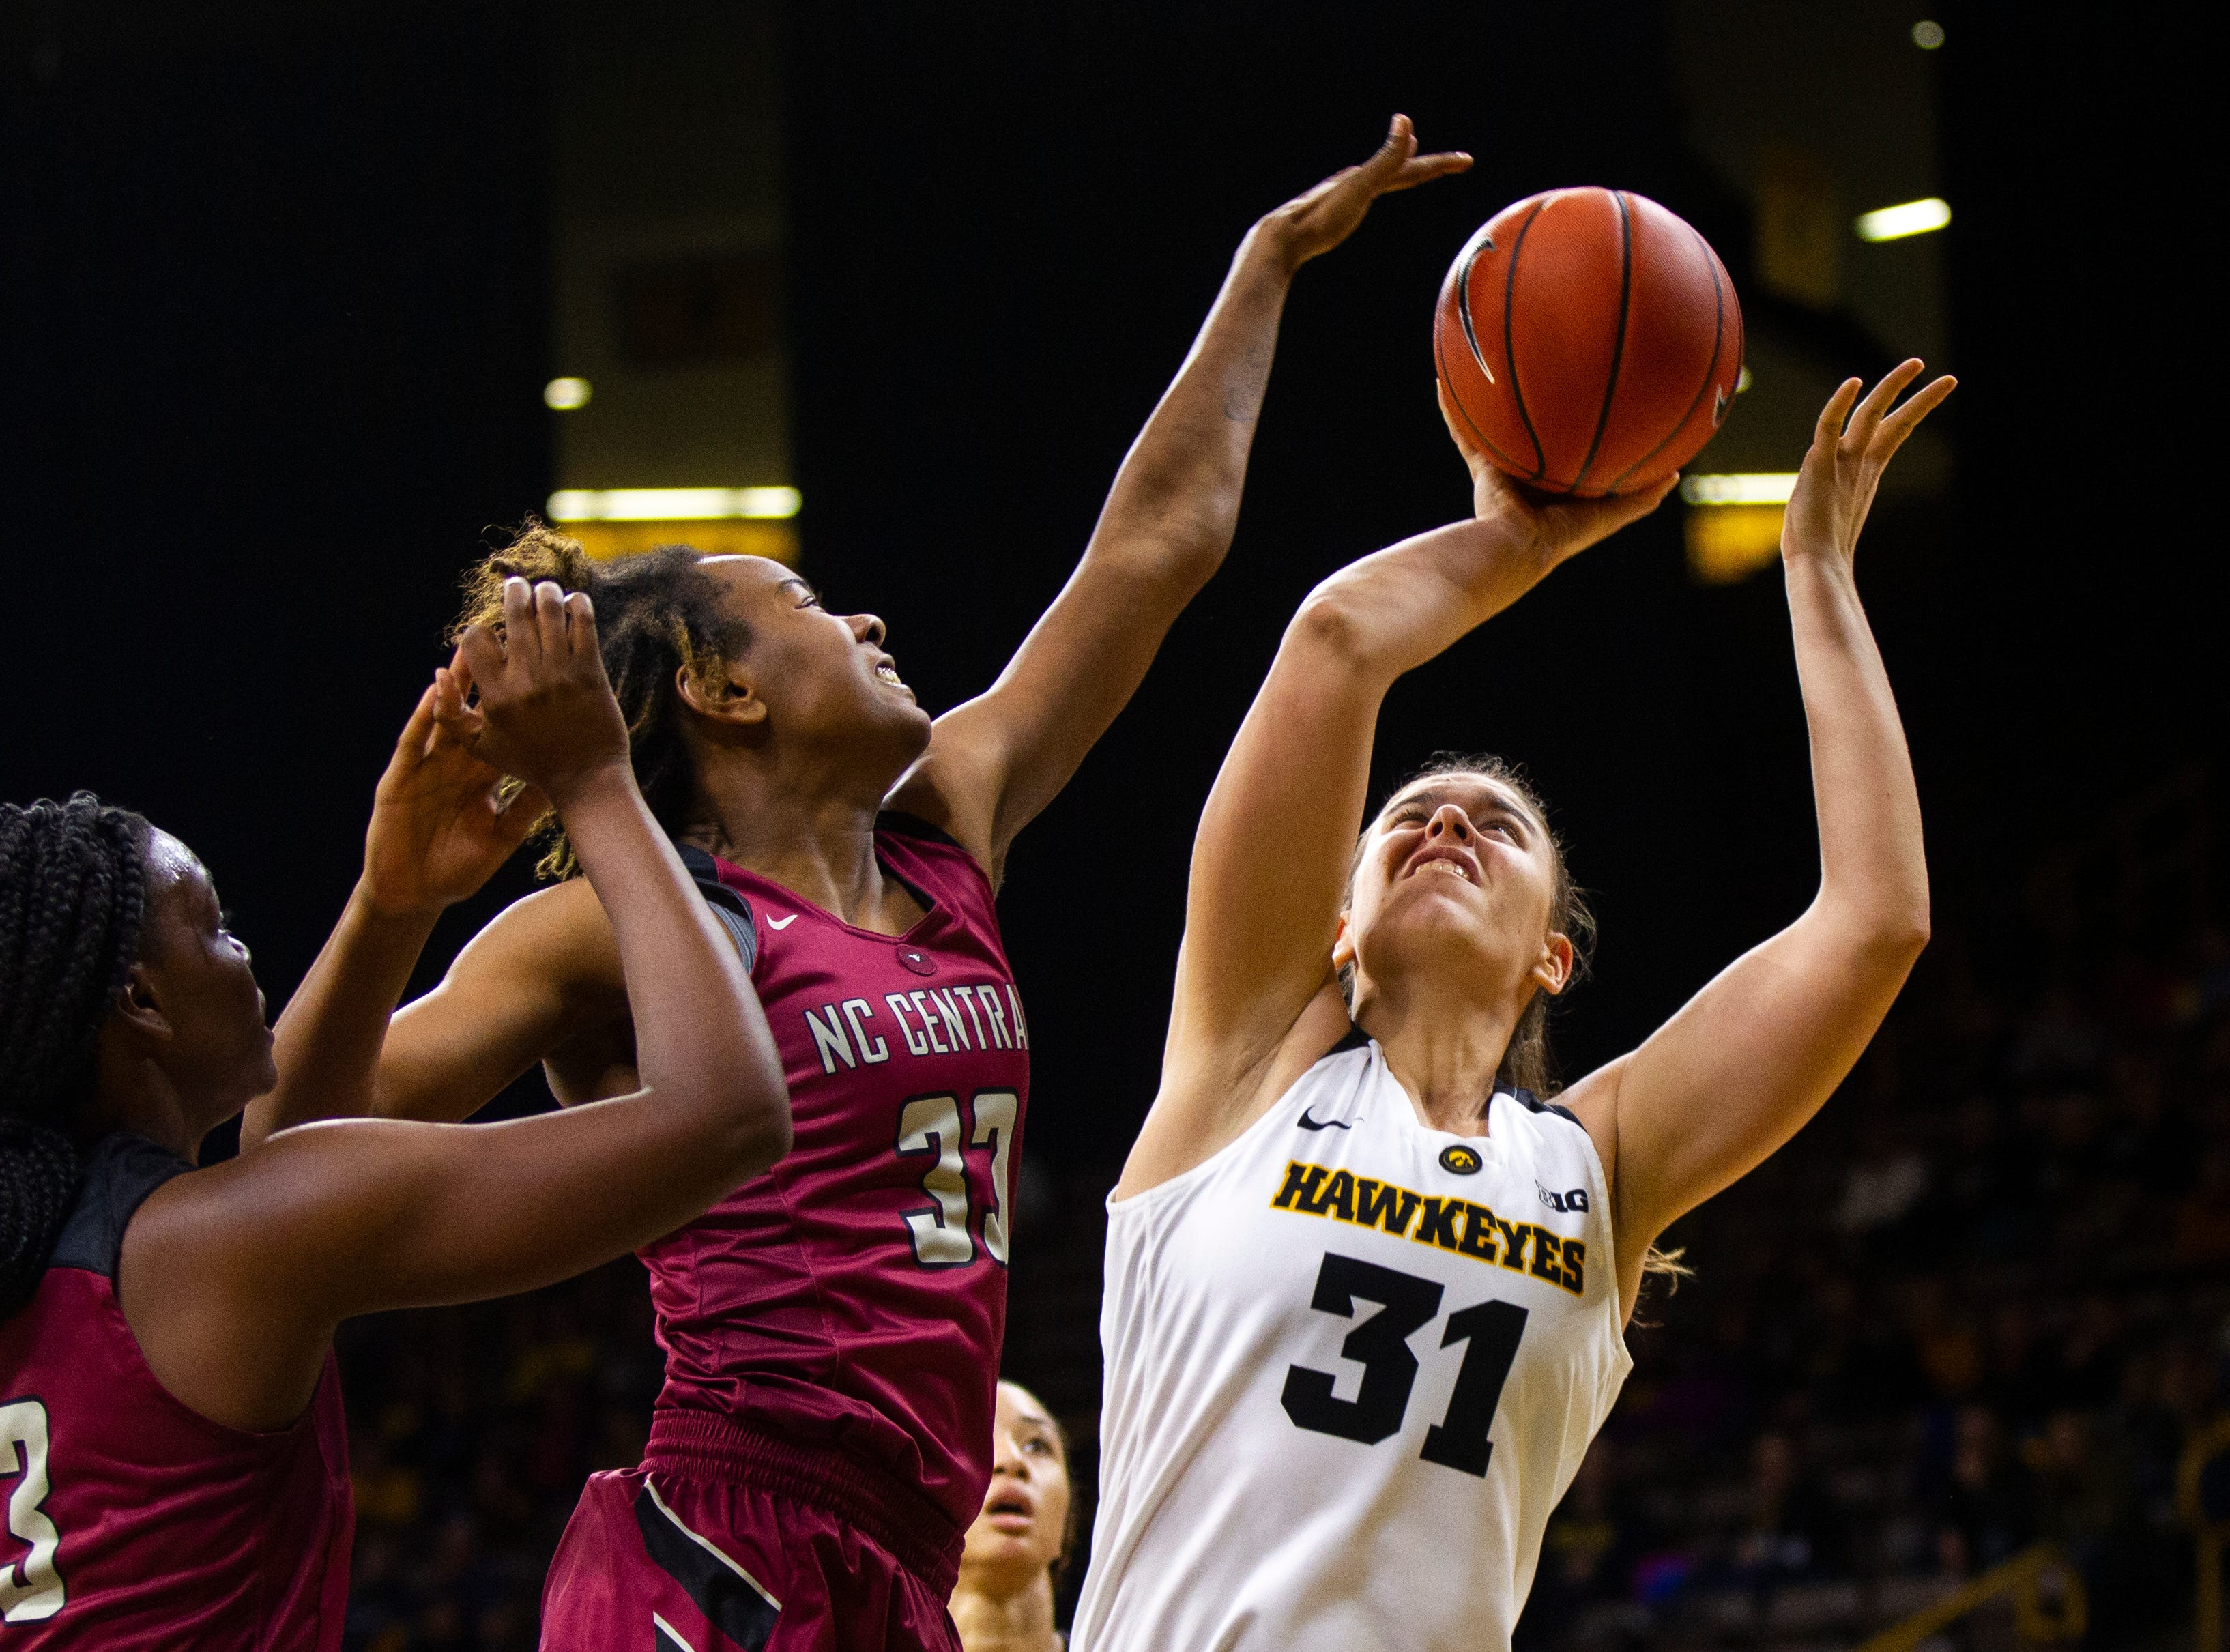 Iowa's Paula Valino Ramos (31) attempts a shot while being defended by North Carolina Central's Kiyana Bown (31) during an NCAA women's basketball game on Saturday, Nov. 17, 2018, at Carver-Hawkeye Arena in Iowa City.